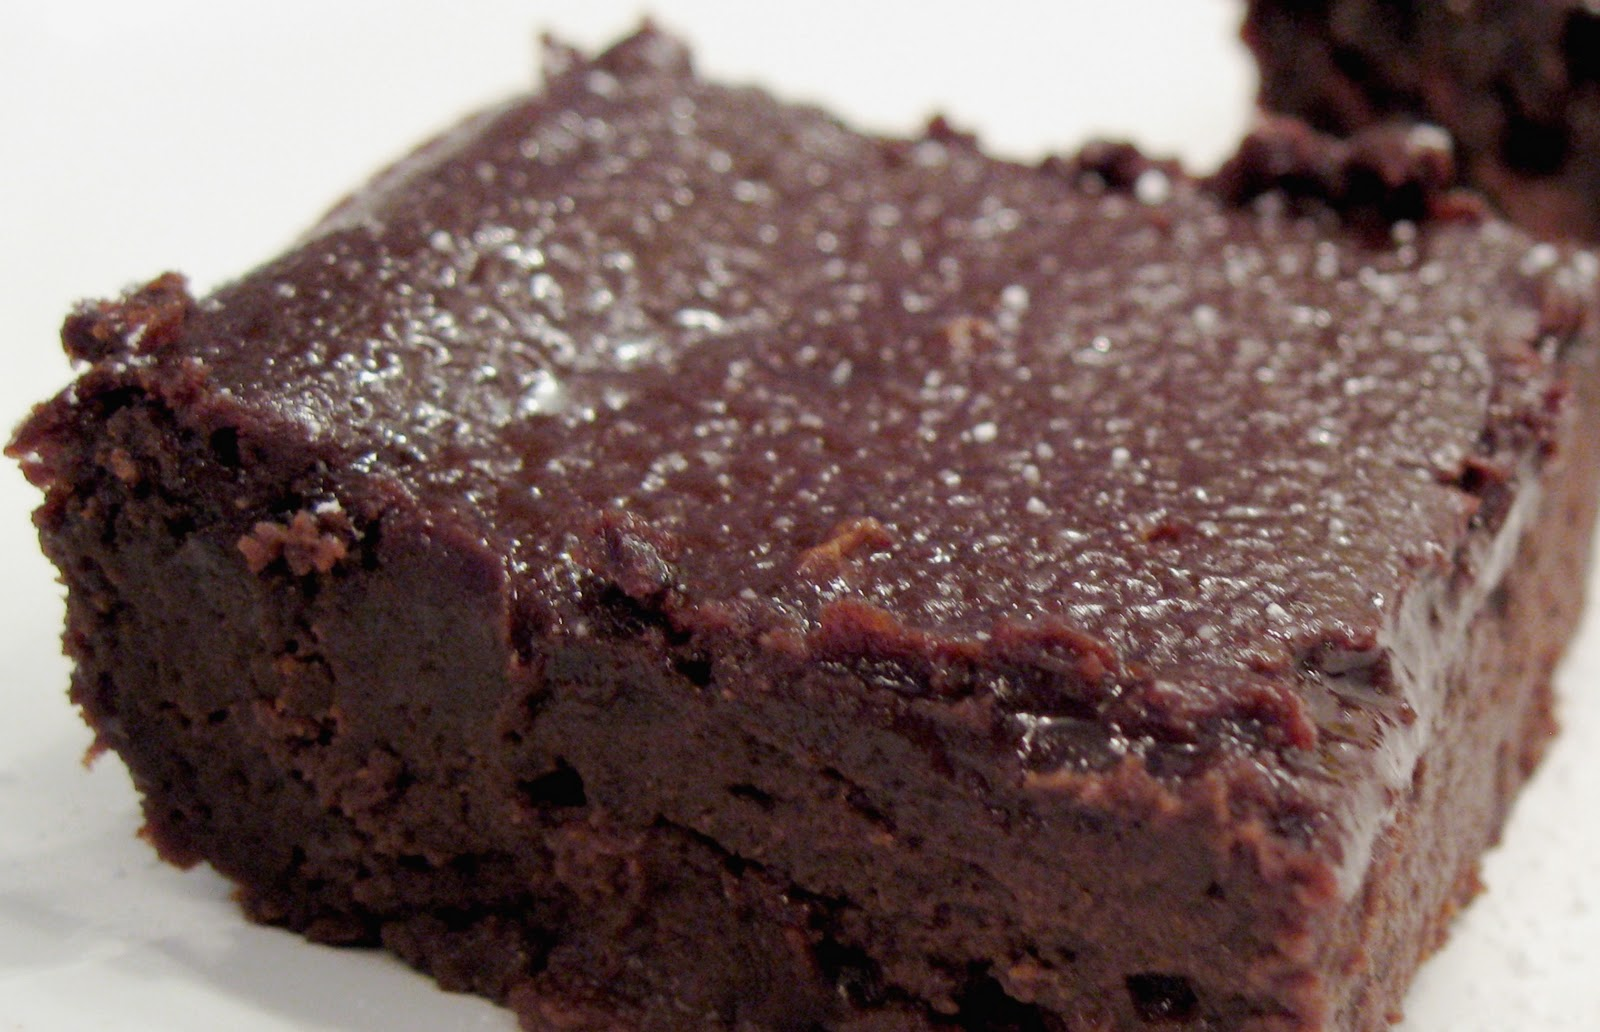 black bean brownies 16oz organic black beans drained and rinsed